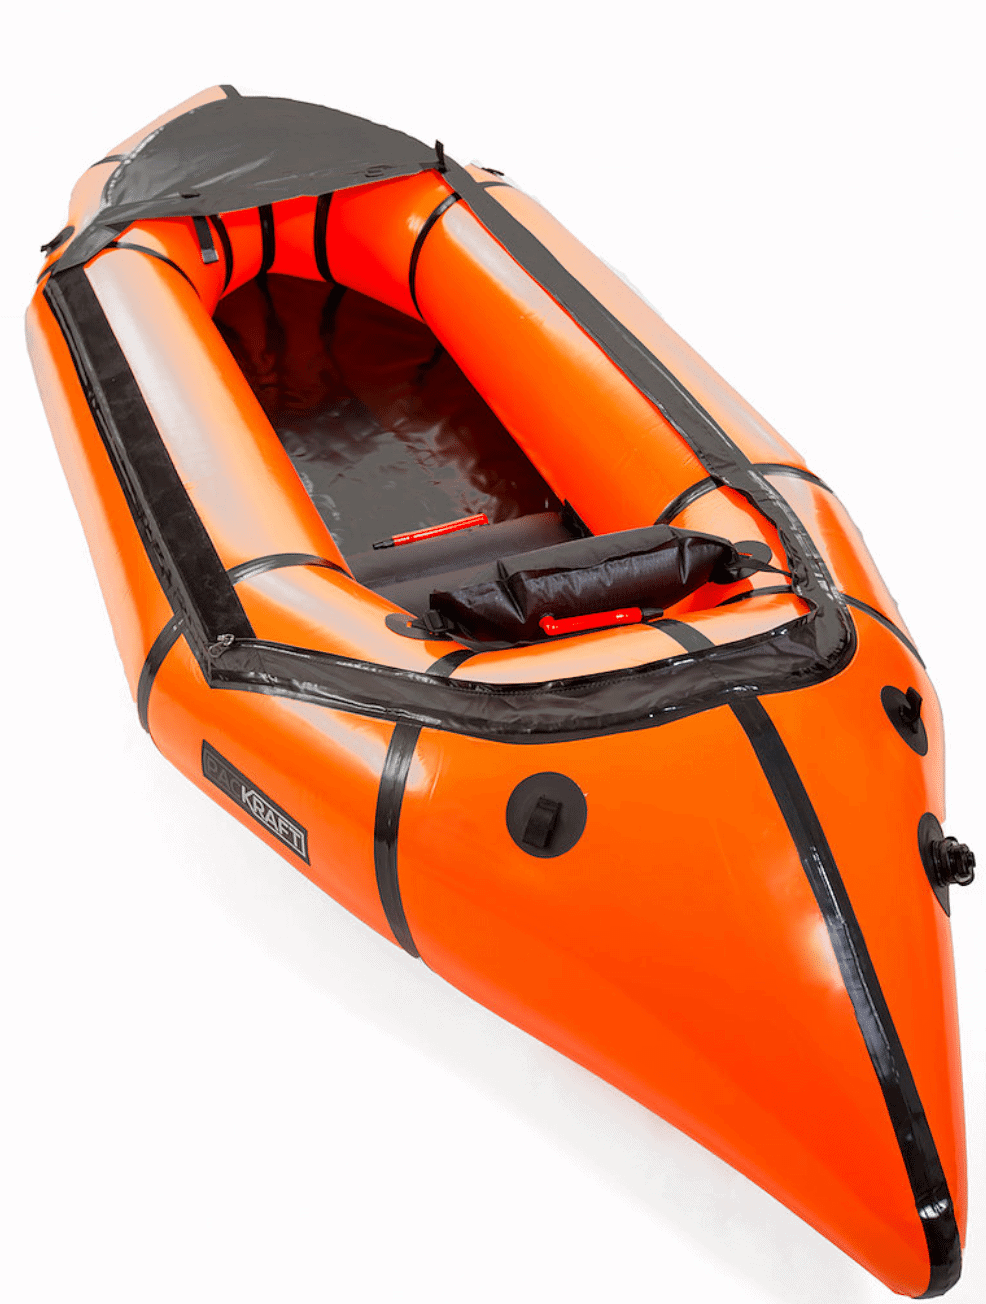 PacKraft for sale